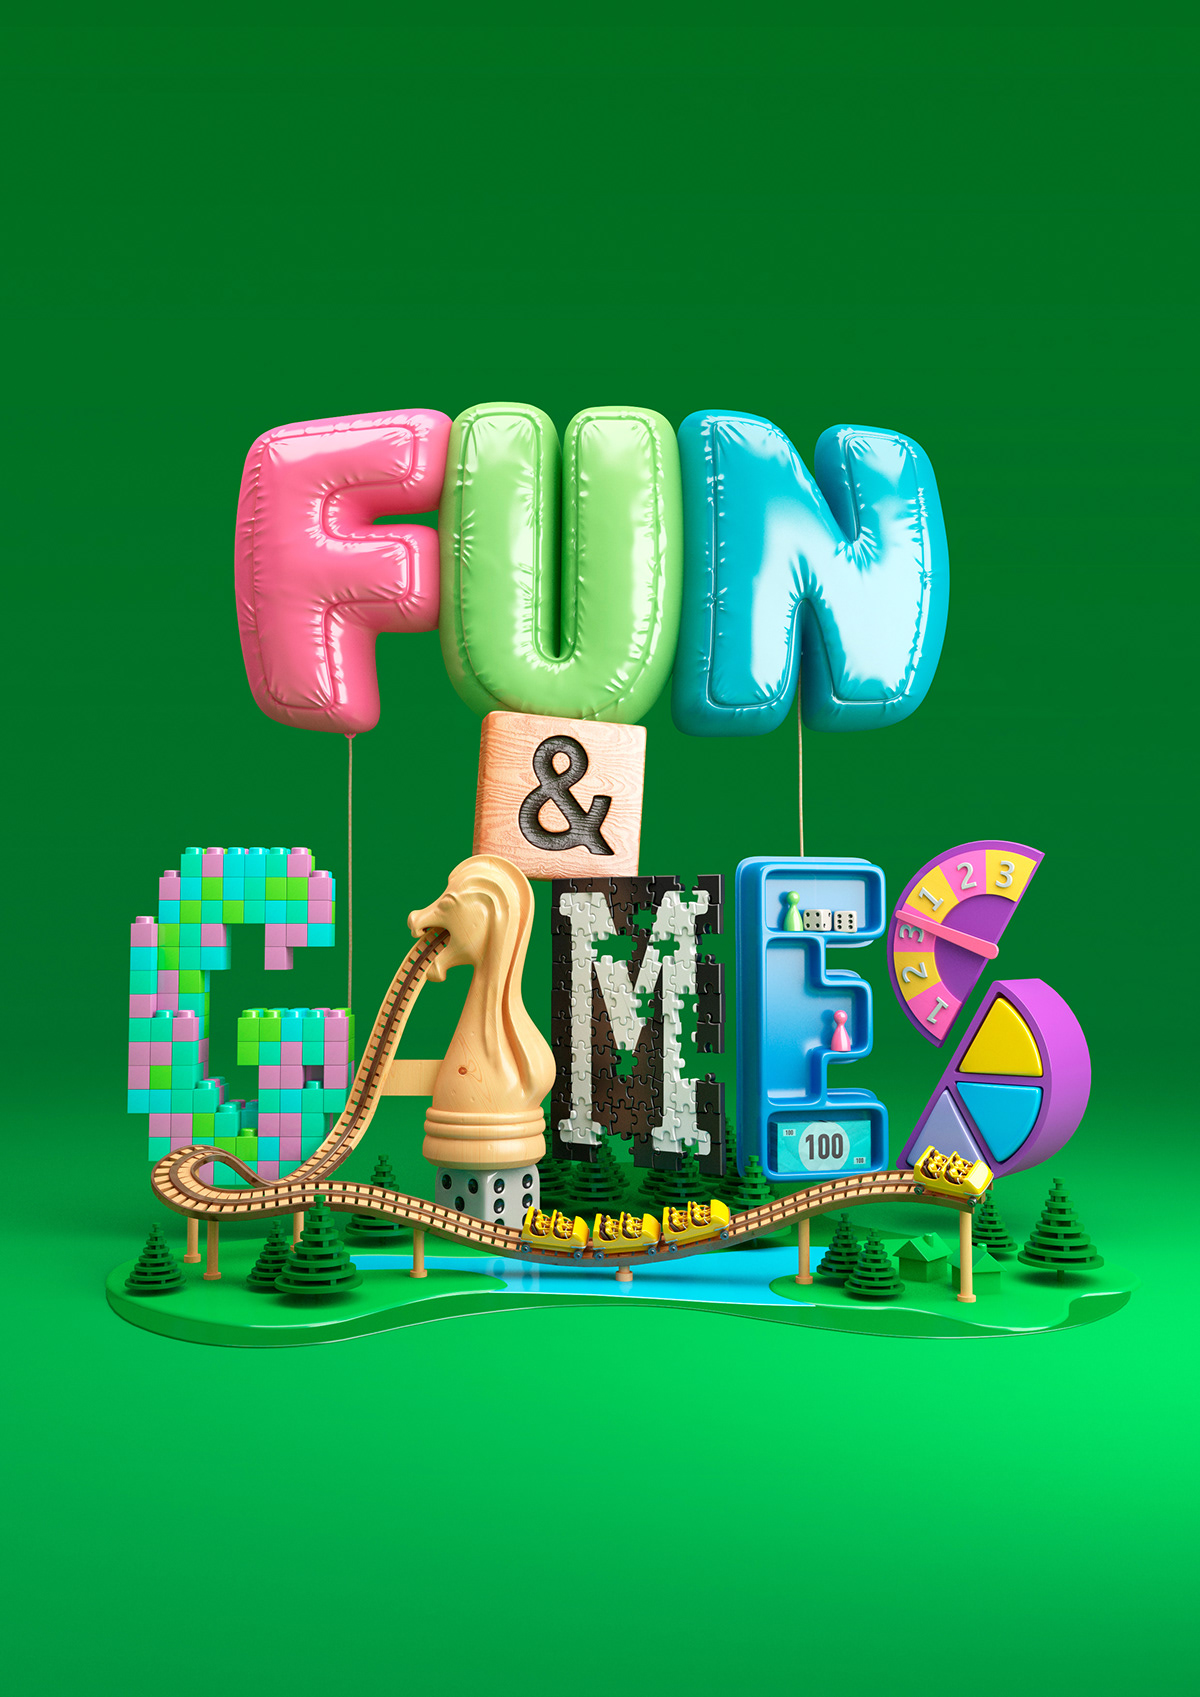 colour pop bright lettering characters 3D CGI design Watches Love 3D Type 3D typography